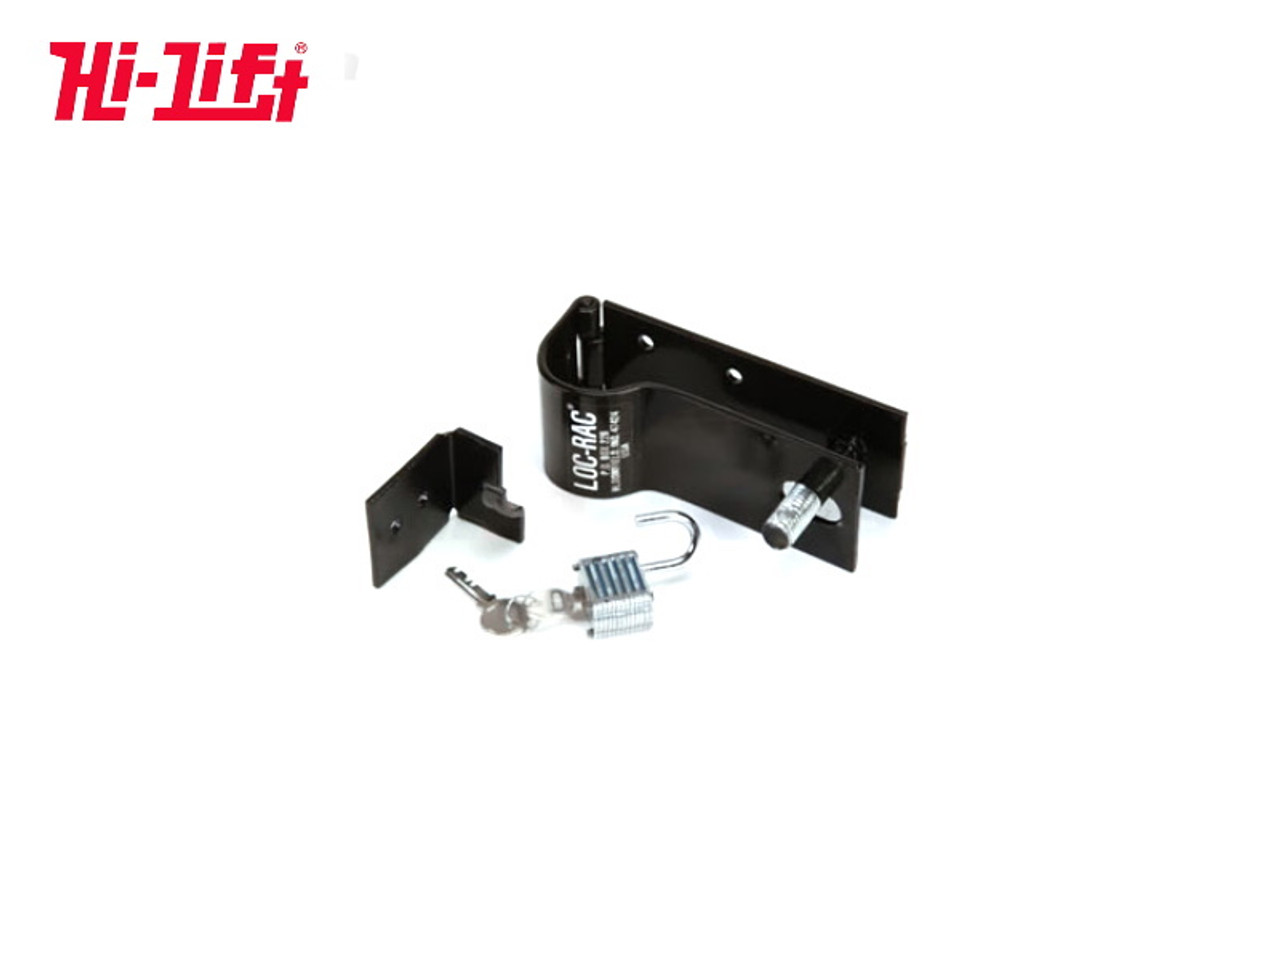 LOCKABLE TRUCK BED OR ANY FLAT SURFACE MOUNTING KIT FOR ALL HI-LIFT JACK